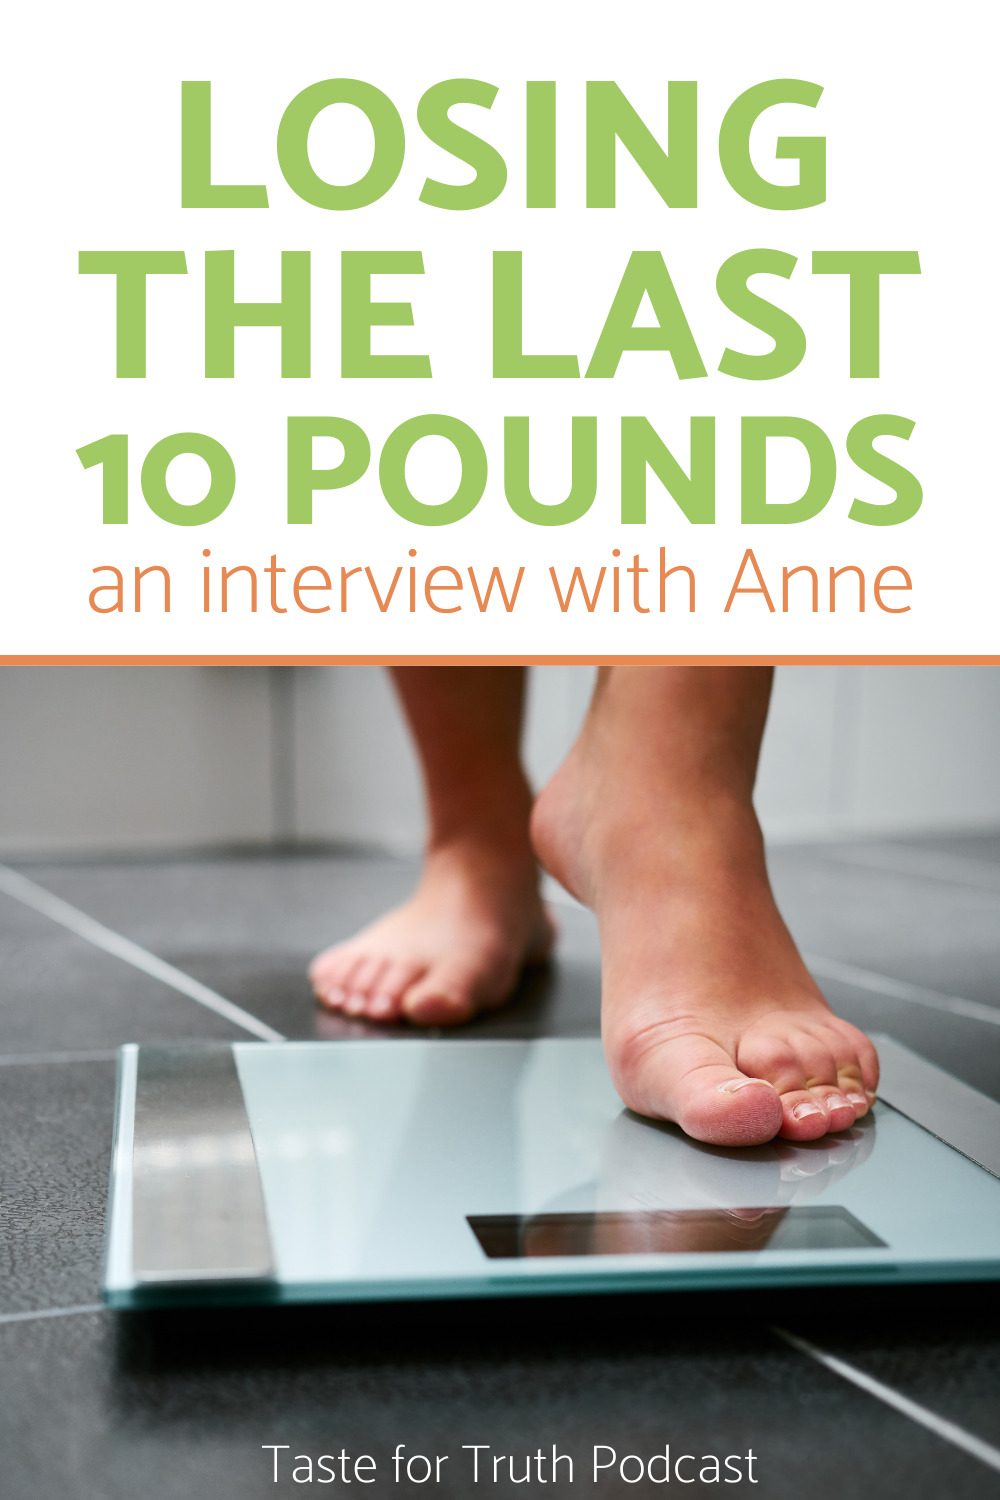 Losing the last 10 pounds